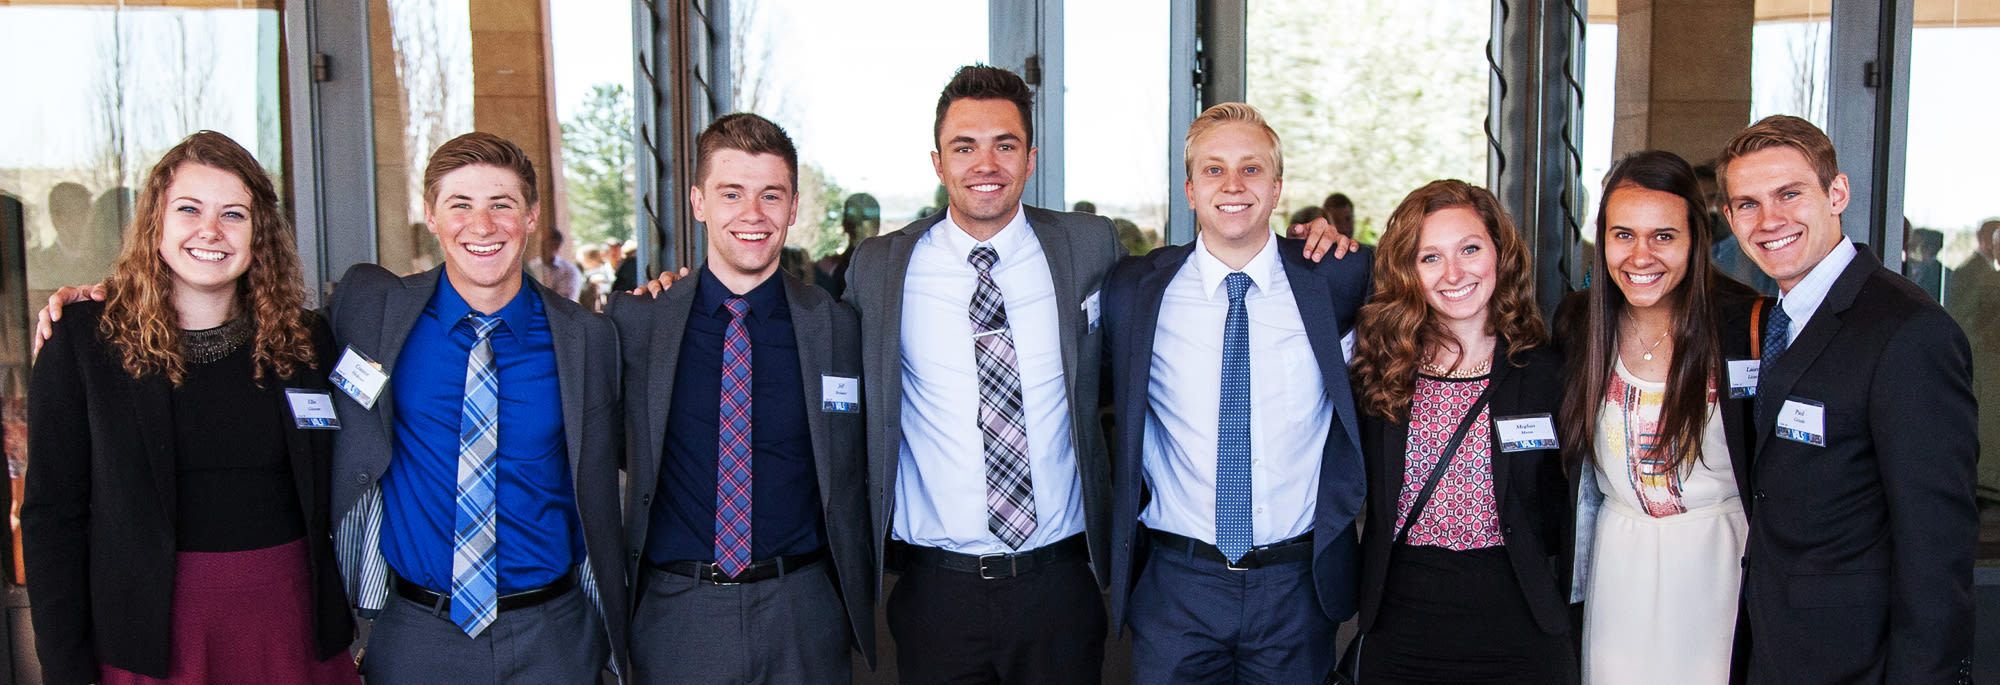 Values-Aligned Leadership Summit unites students and executives to examine business trends